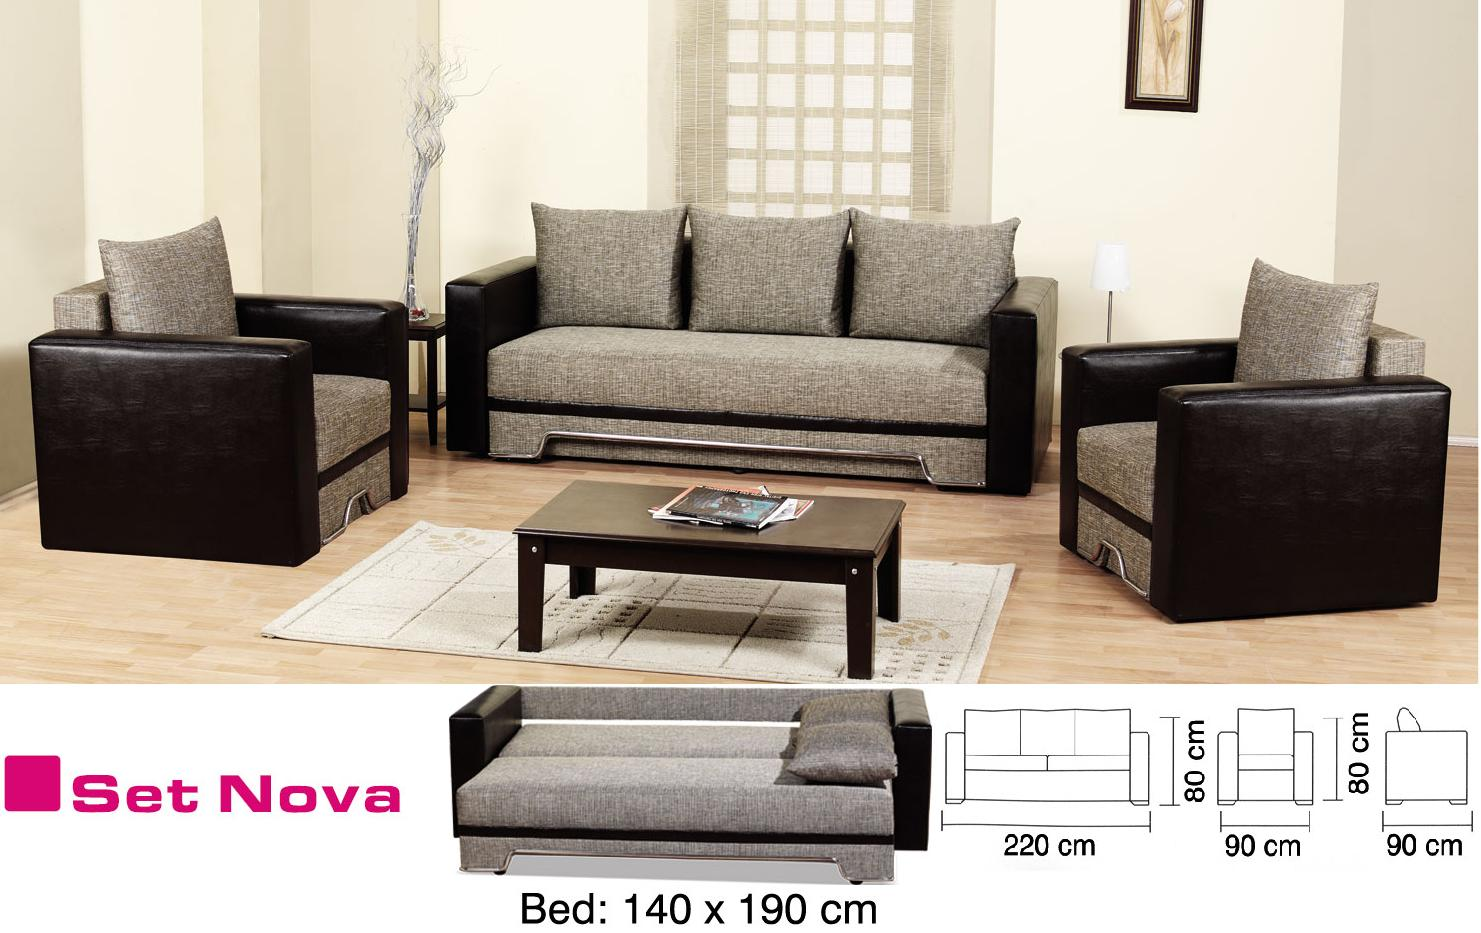 mattresses sofa sets pottery barn pearce dimensions starline funiture mobilya mebel sofas sofabeds